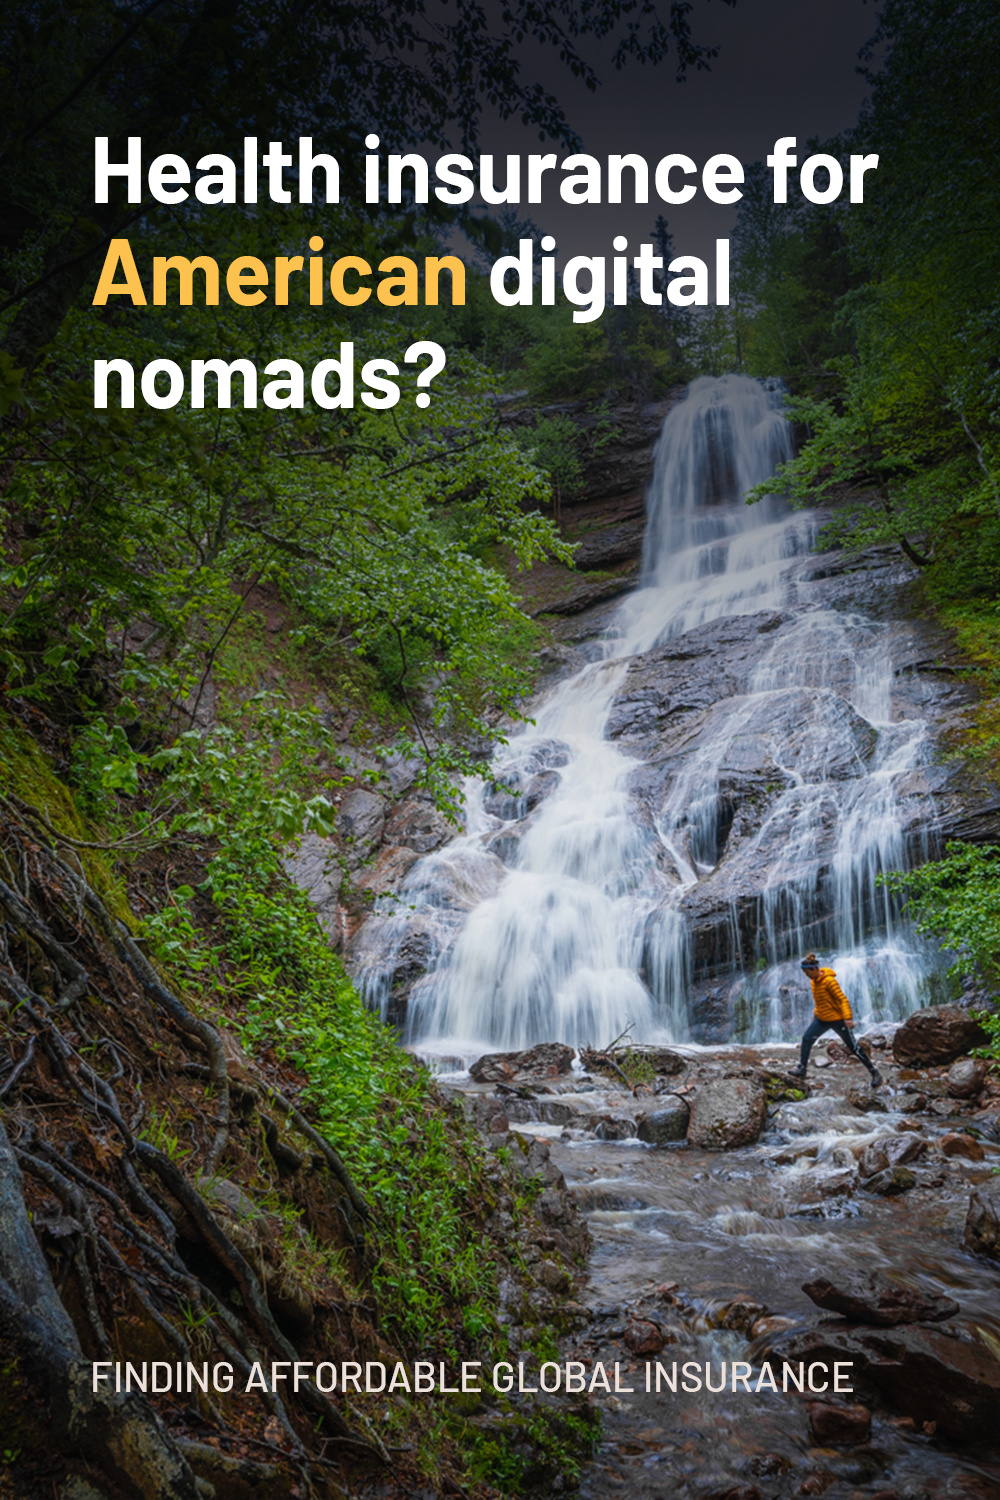 Looking for health insurance for American digital nomads? Confused about how to find insurance that covers you during long-term travel when you don't have a base? Here's how I found insurance as a digital nomad, and what global health insurance I recommend.